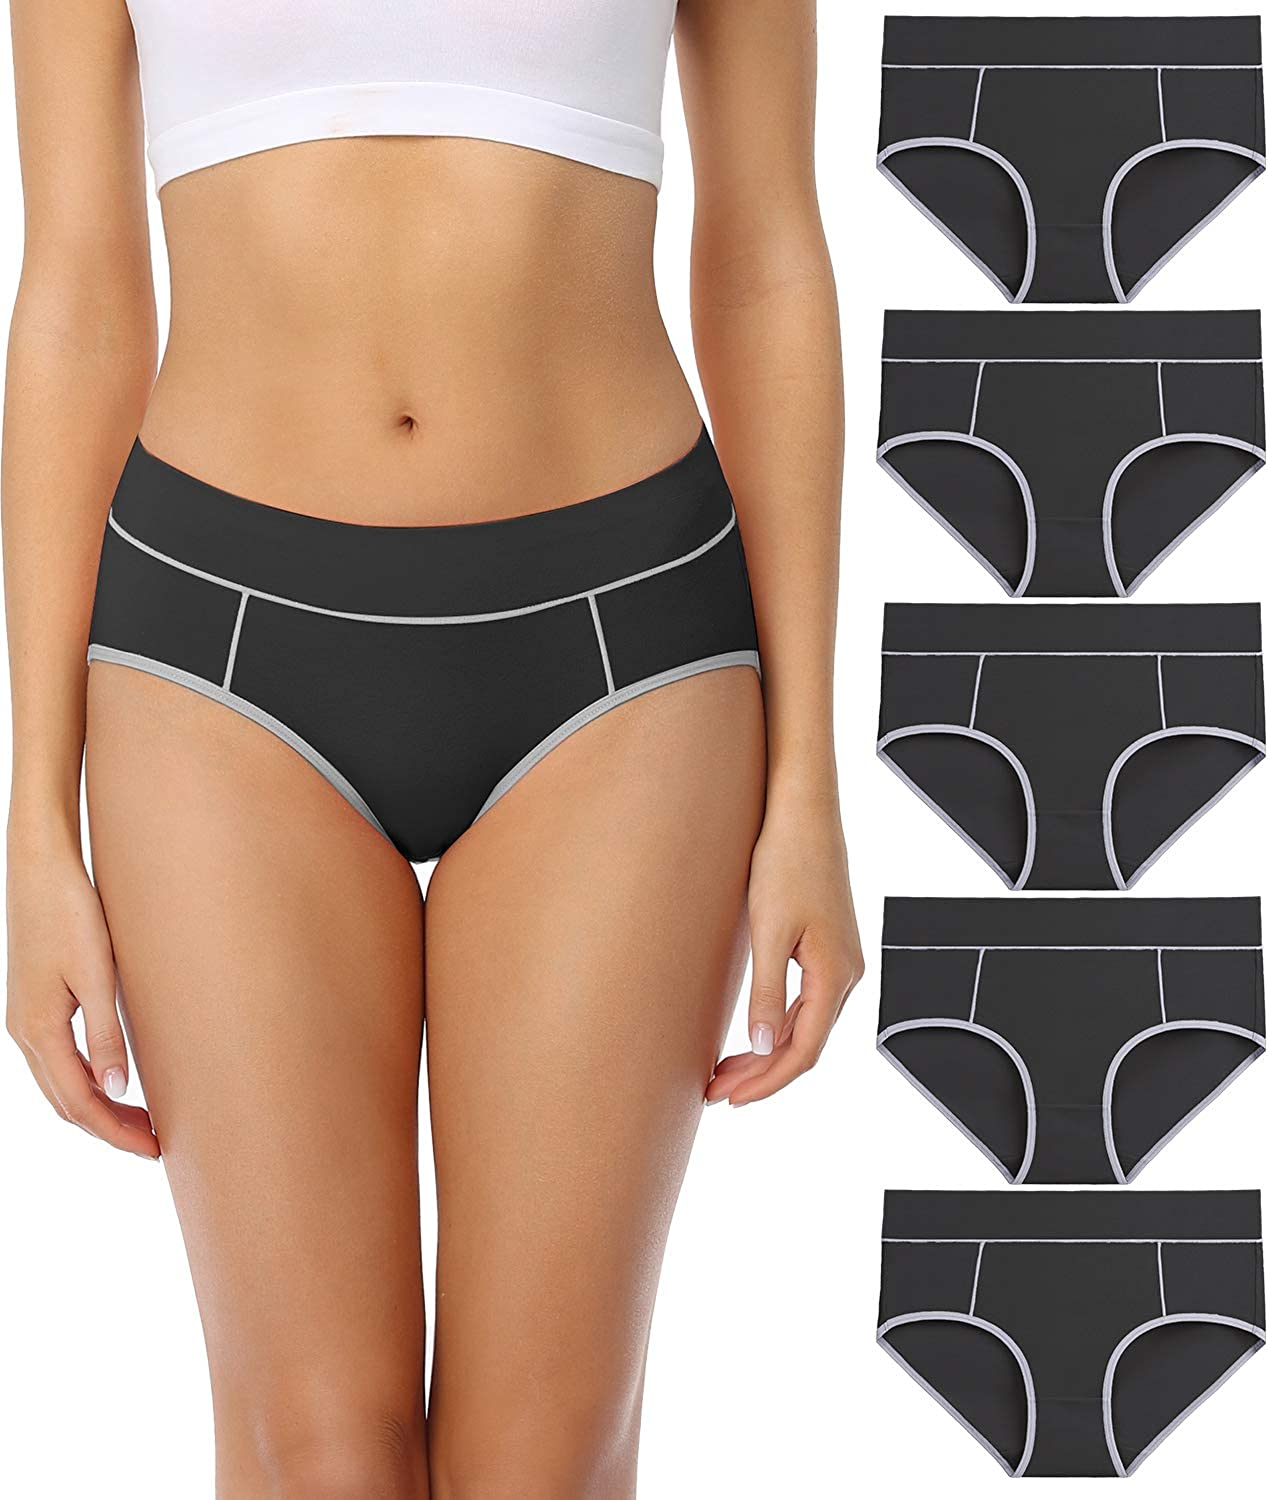 wirarpa Ladies Cotton Pants Underwear Mid Rise Knickers Stretch Briefs for Women Plus Size 5 Pack